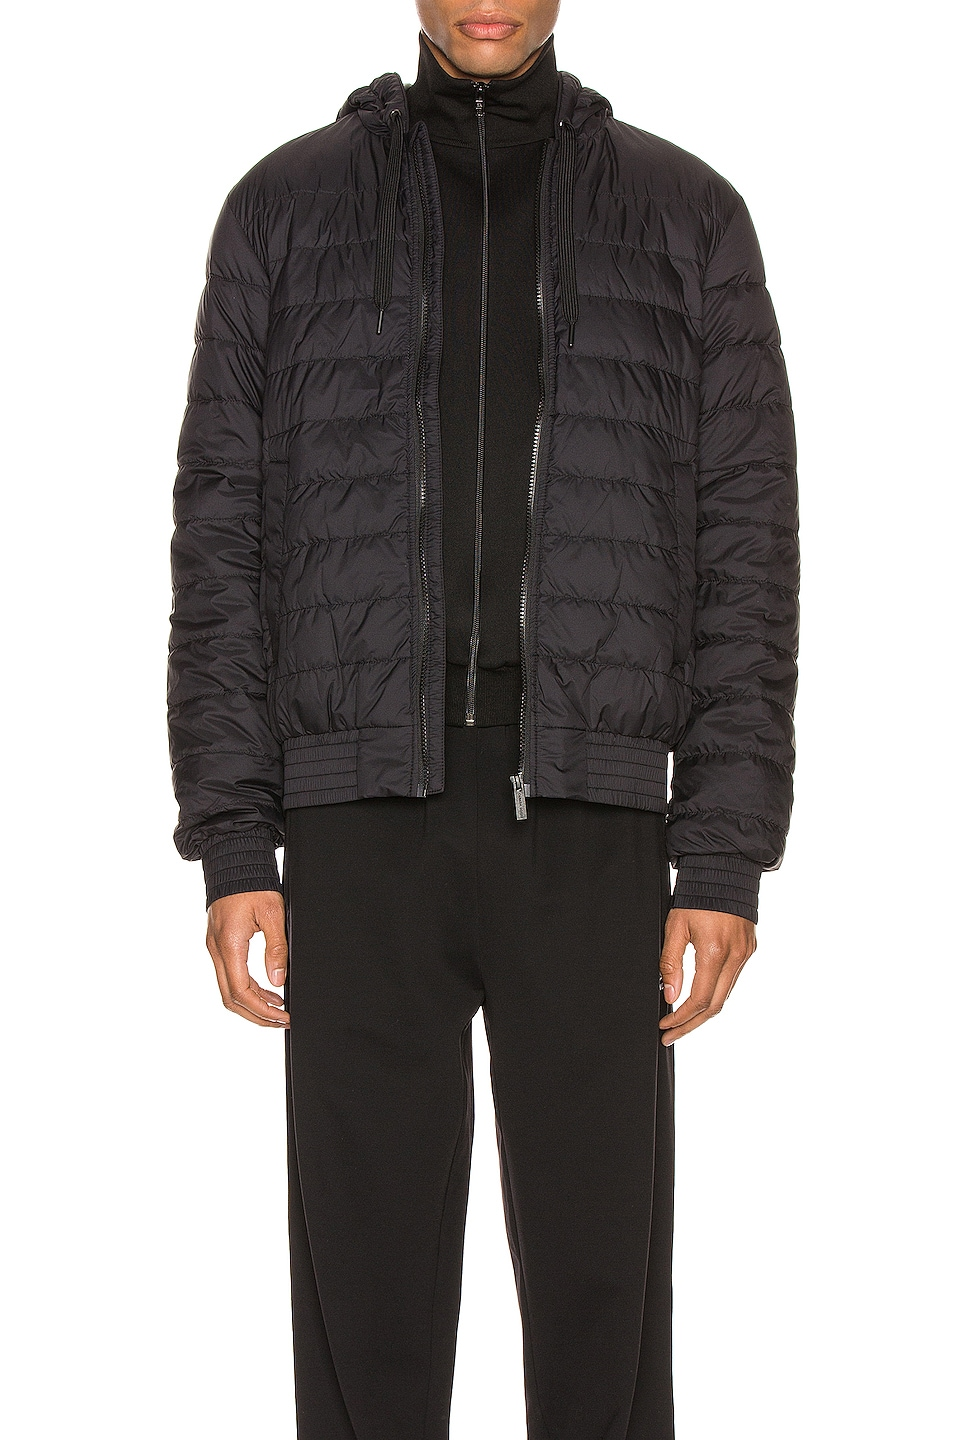 Image 1 of Canada Goose Black Label Sydney Hoody in Black